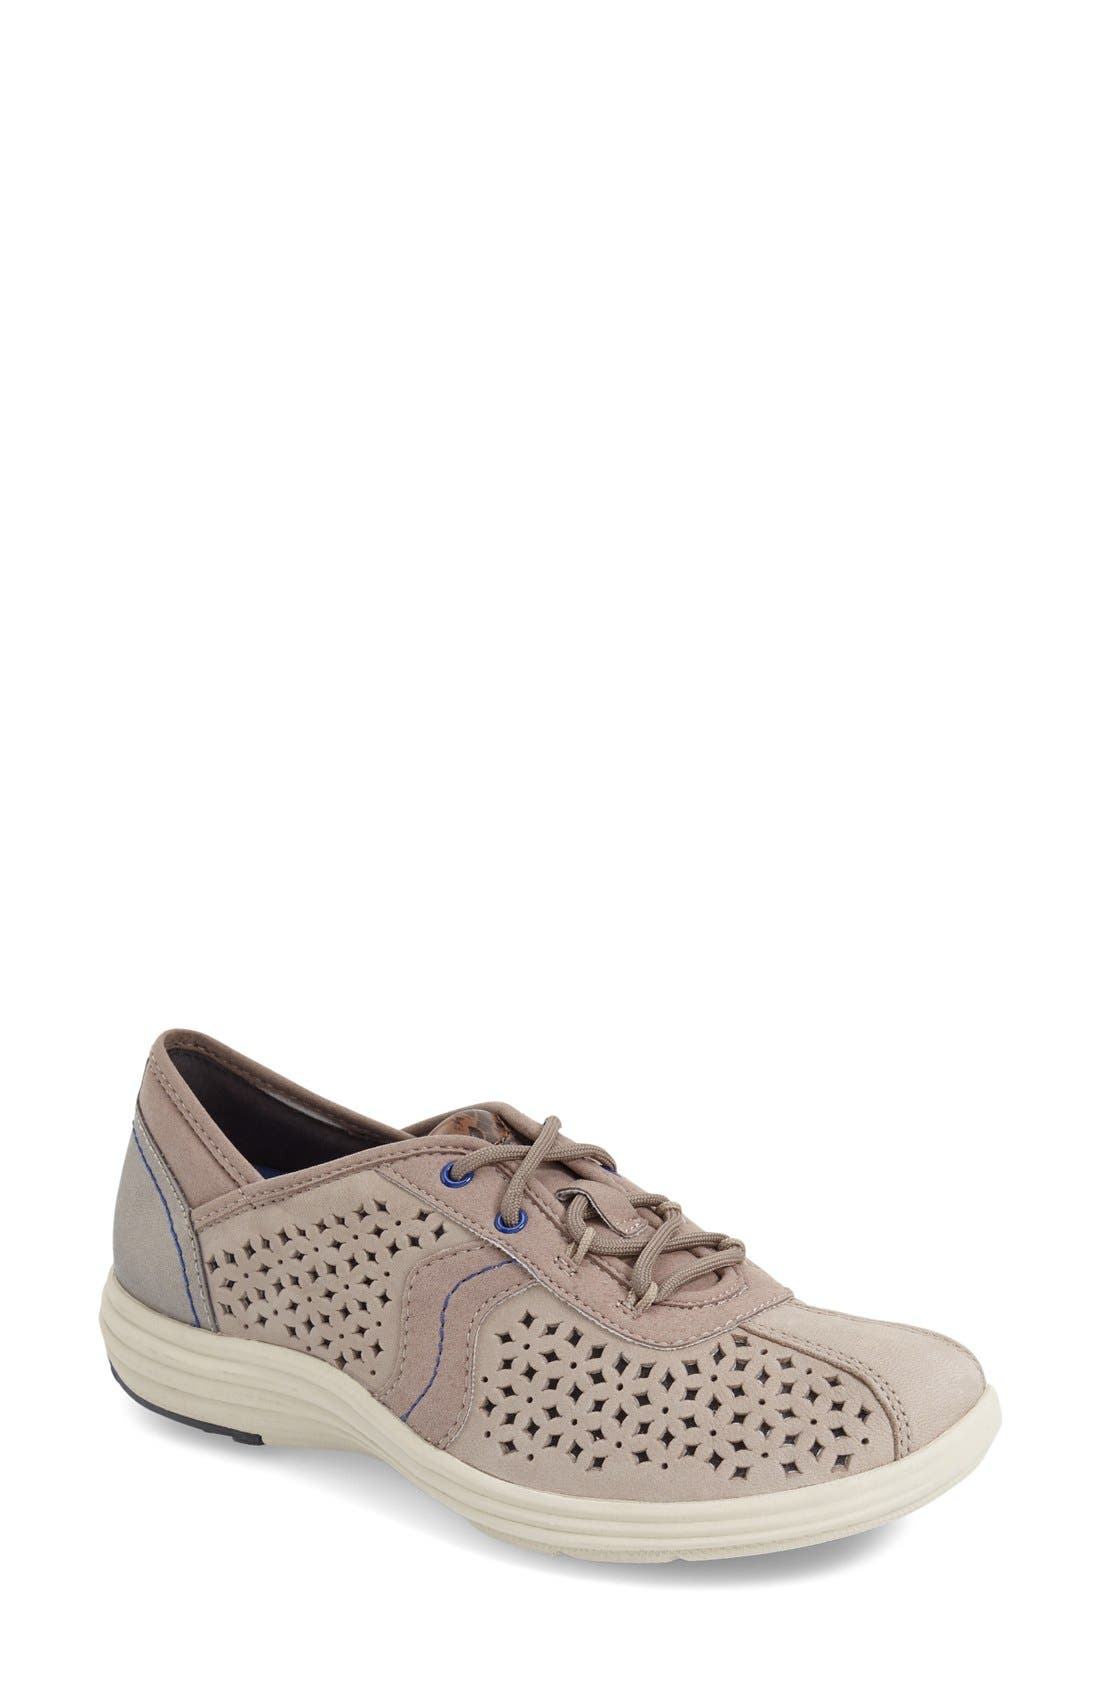 'Betty' Sneaker,                         Main,                         color, Grey Leather